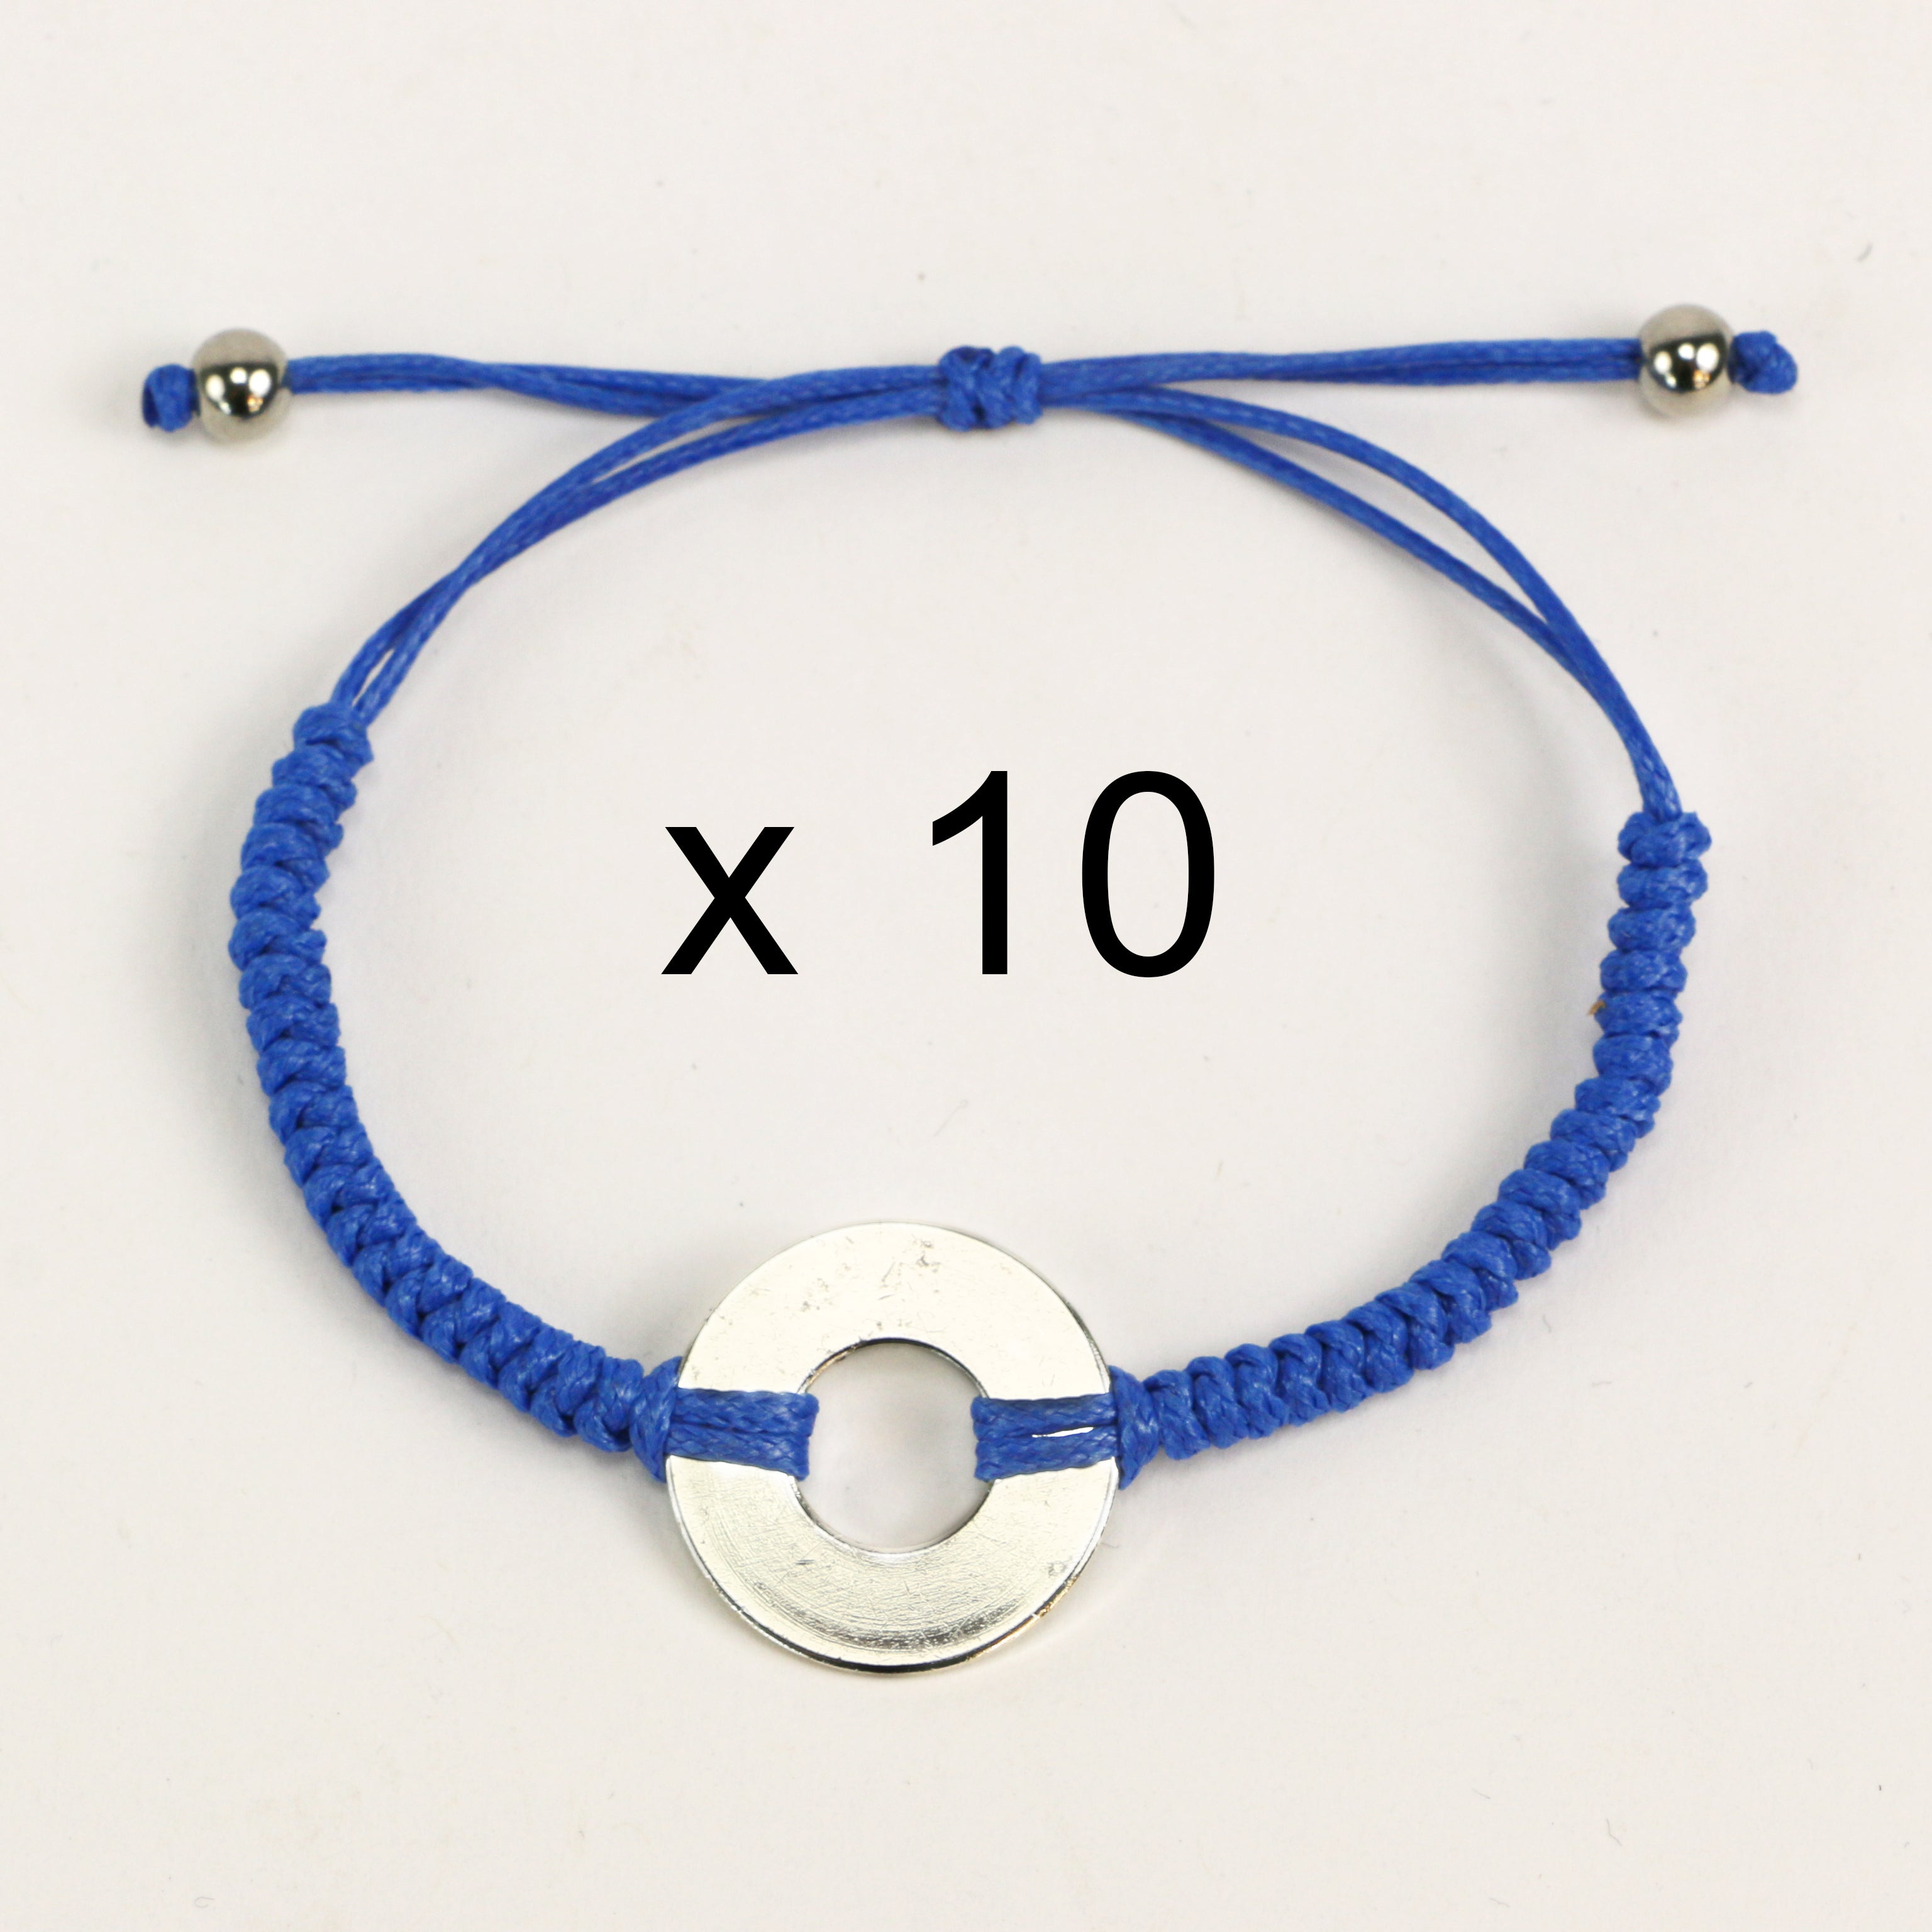 MyIntent Refill Round Bracelets set of 10 in Blue with Silver Tokens